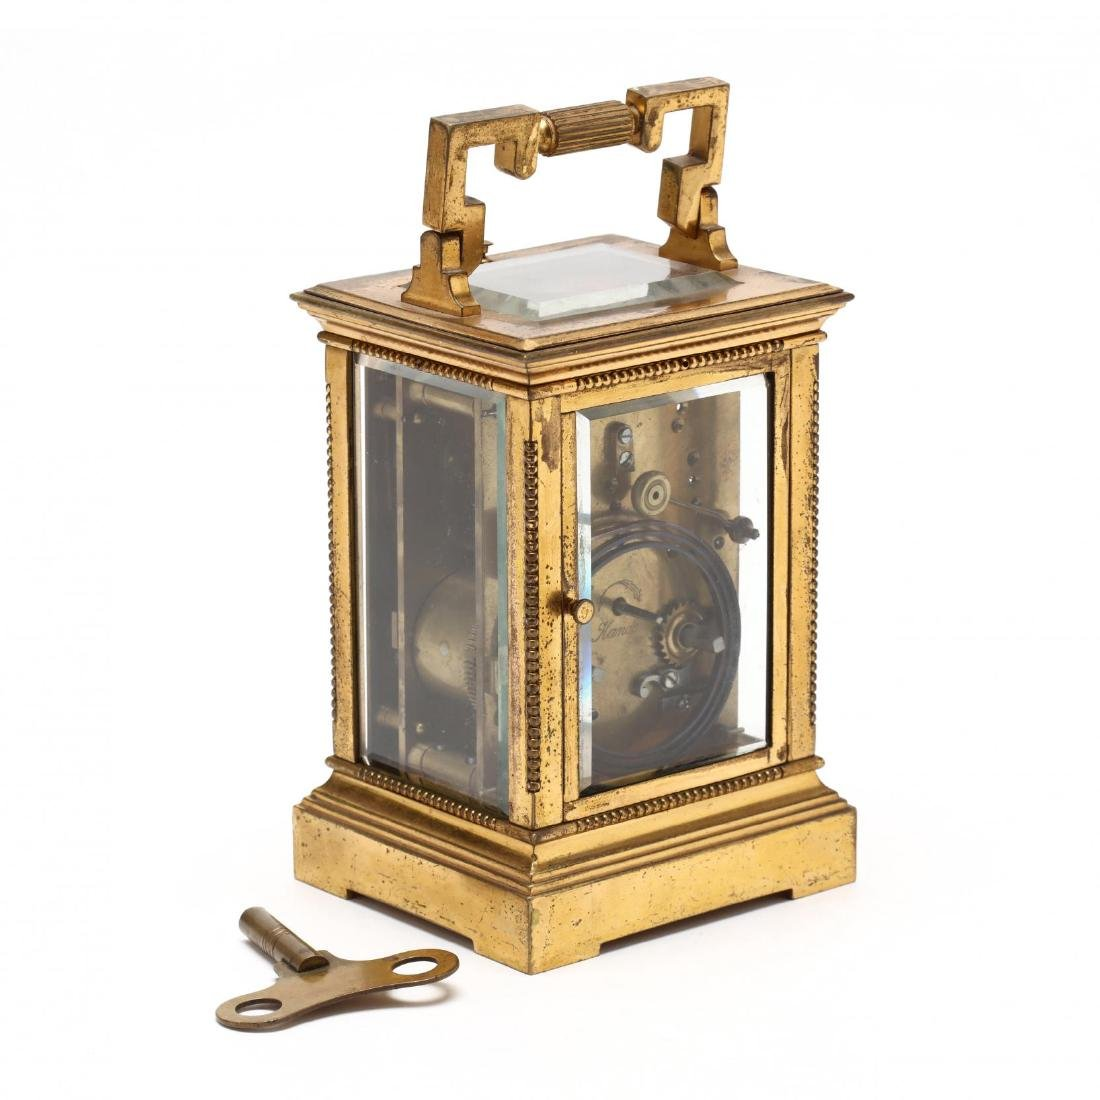 Mitchell Vance & Co., Gilt Bronze Carriage Clock - 2